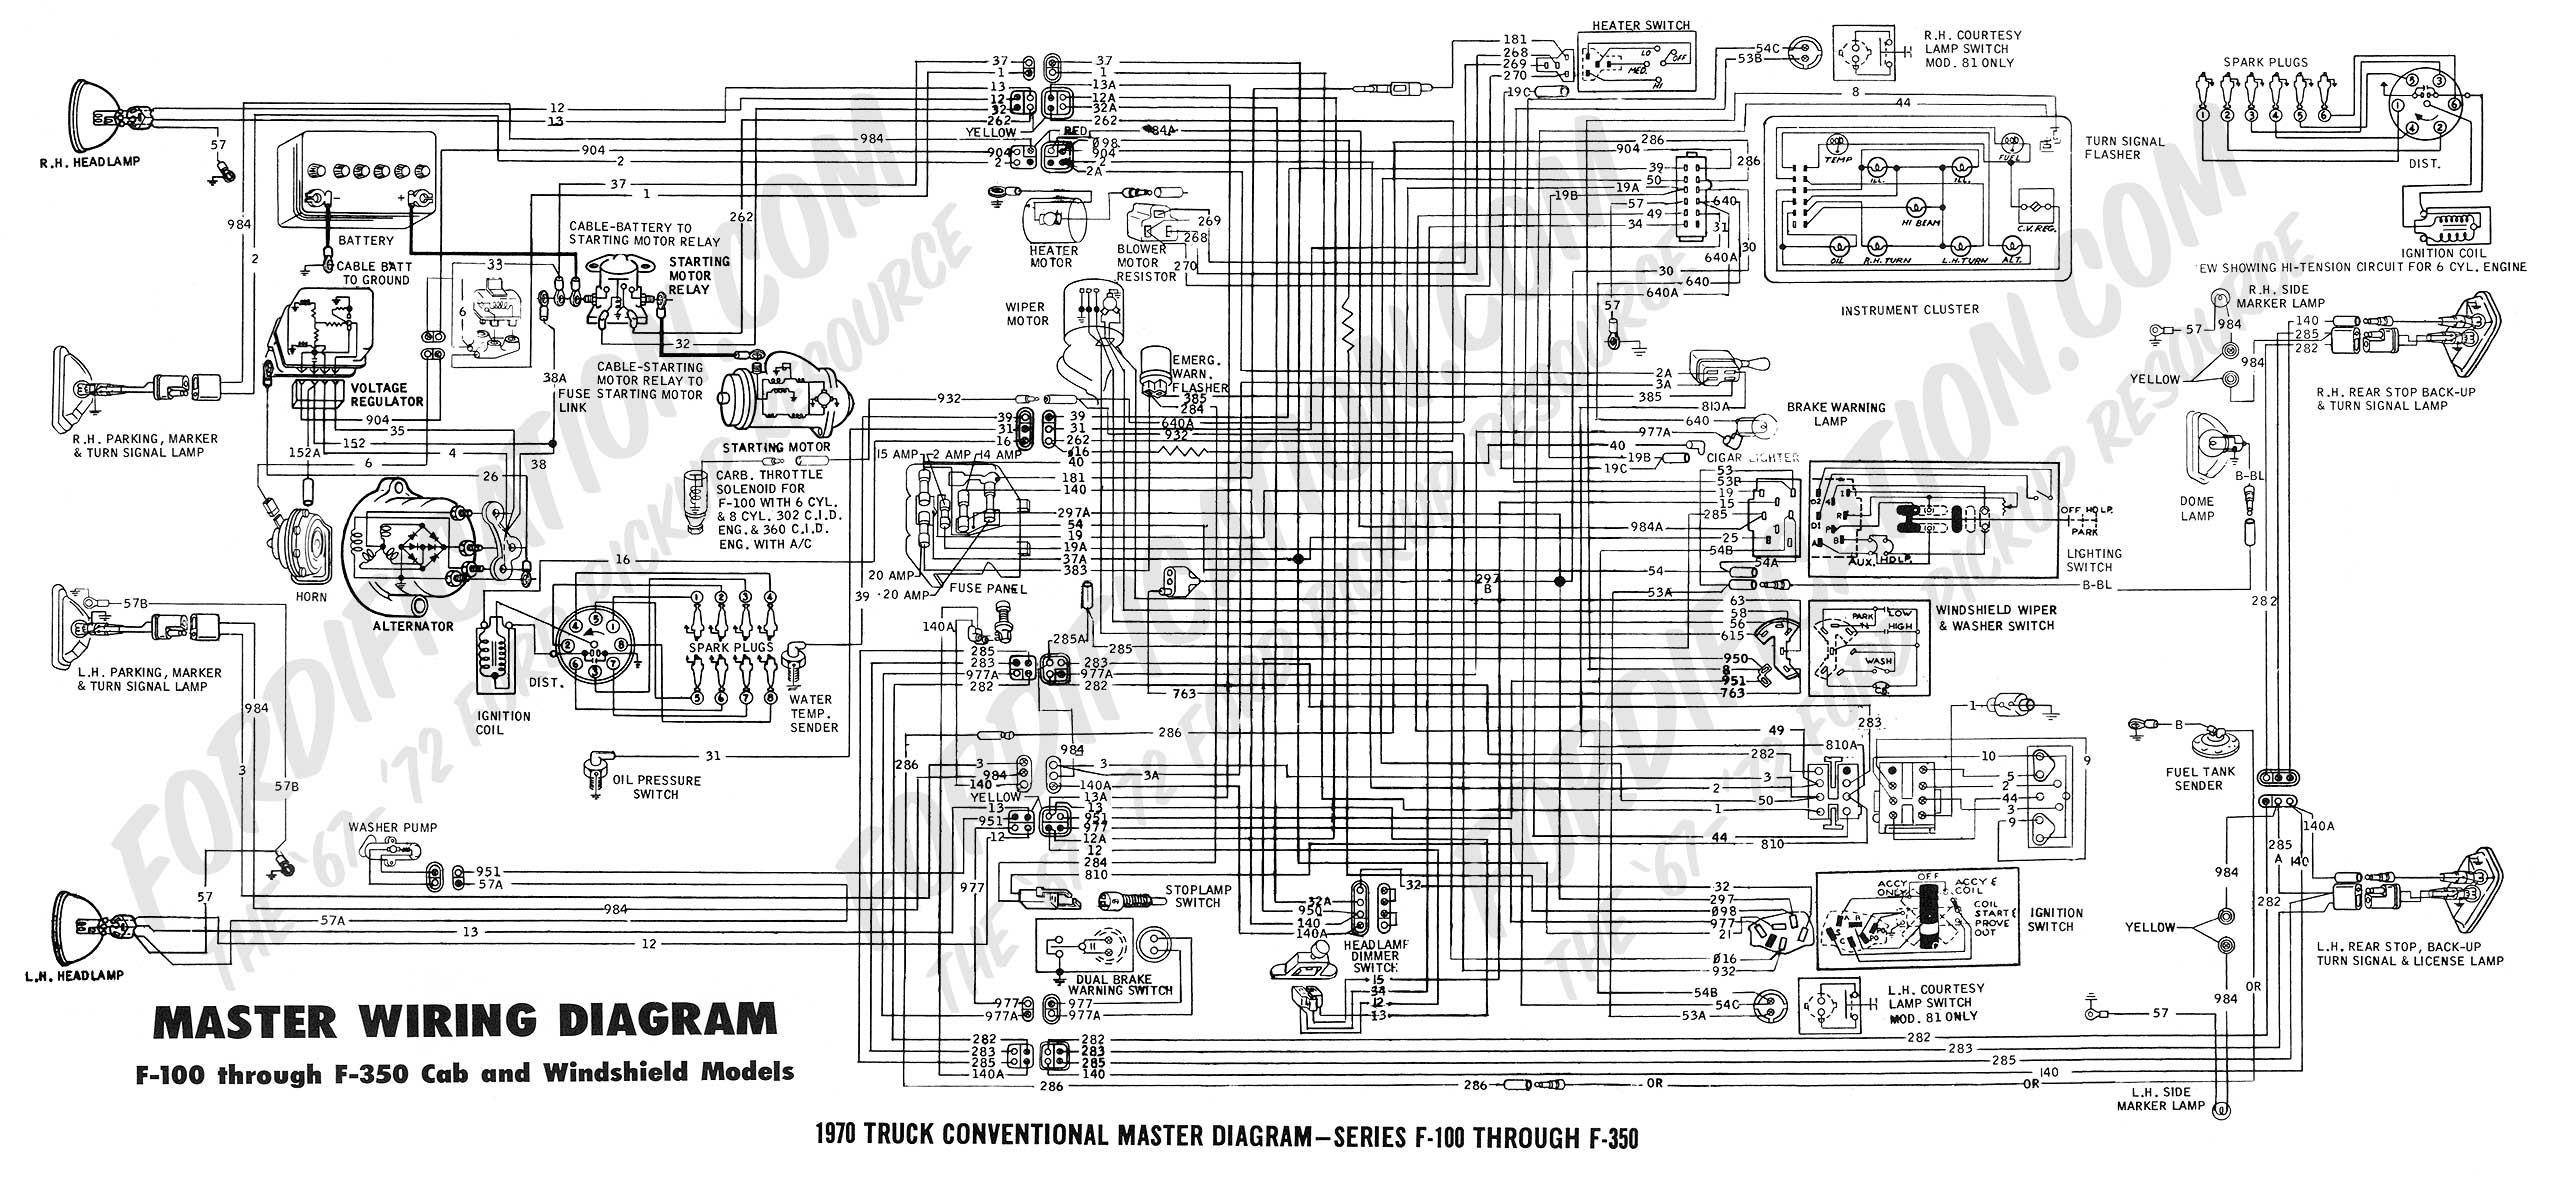 Renault Master Wiring Diagram on 1964 ford falcon ranchero wiring diagram